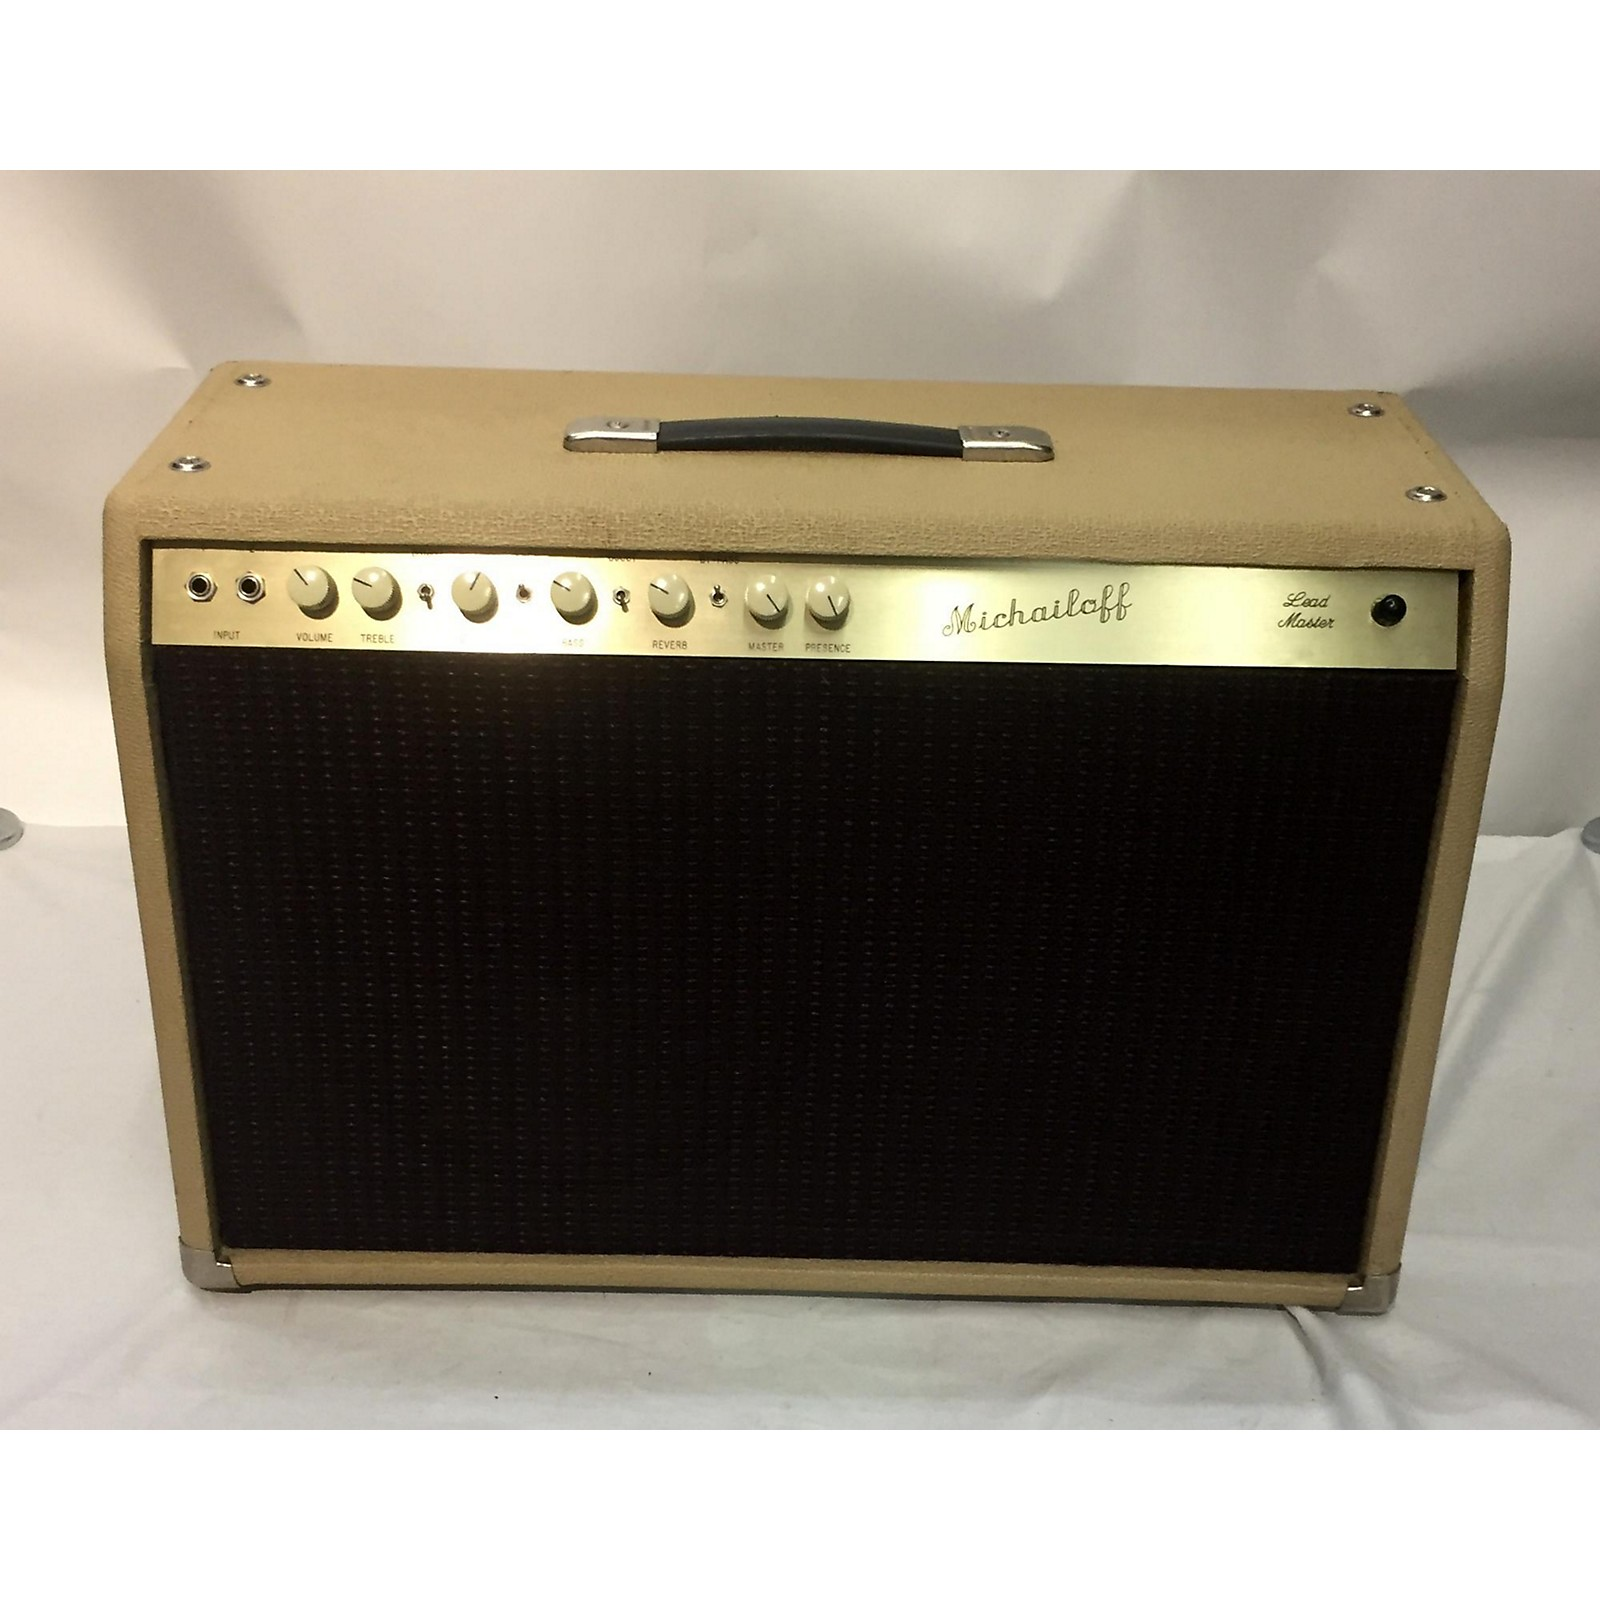 In Store Used Used Michaeloff Lead Master 112 Tube Guitar Combo Amp